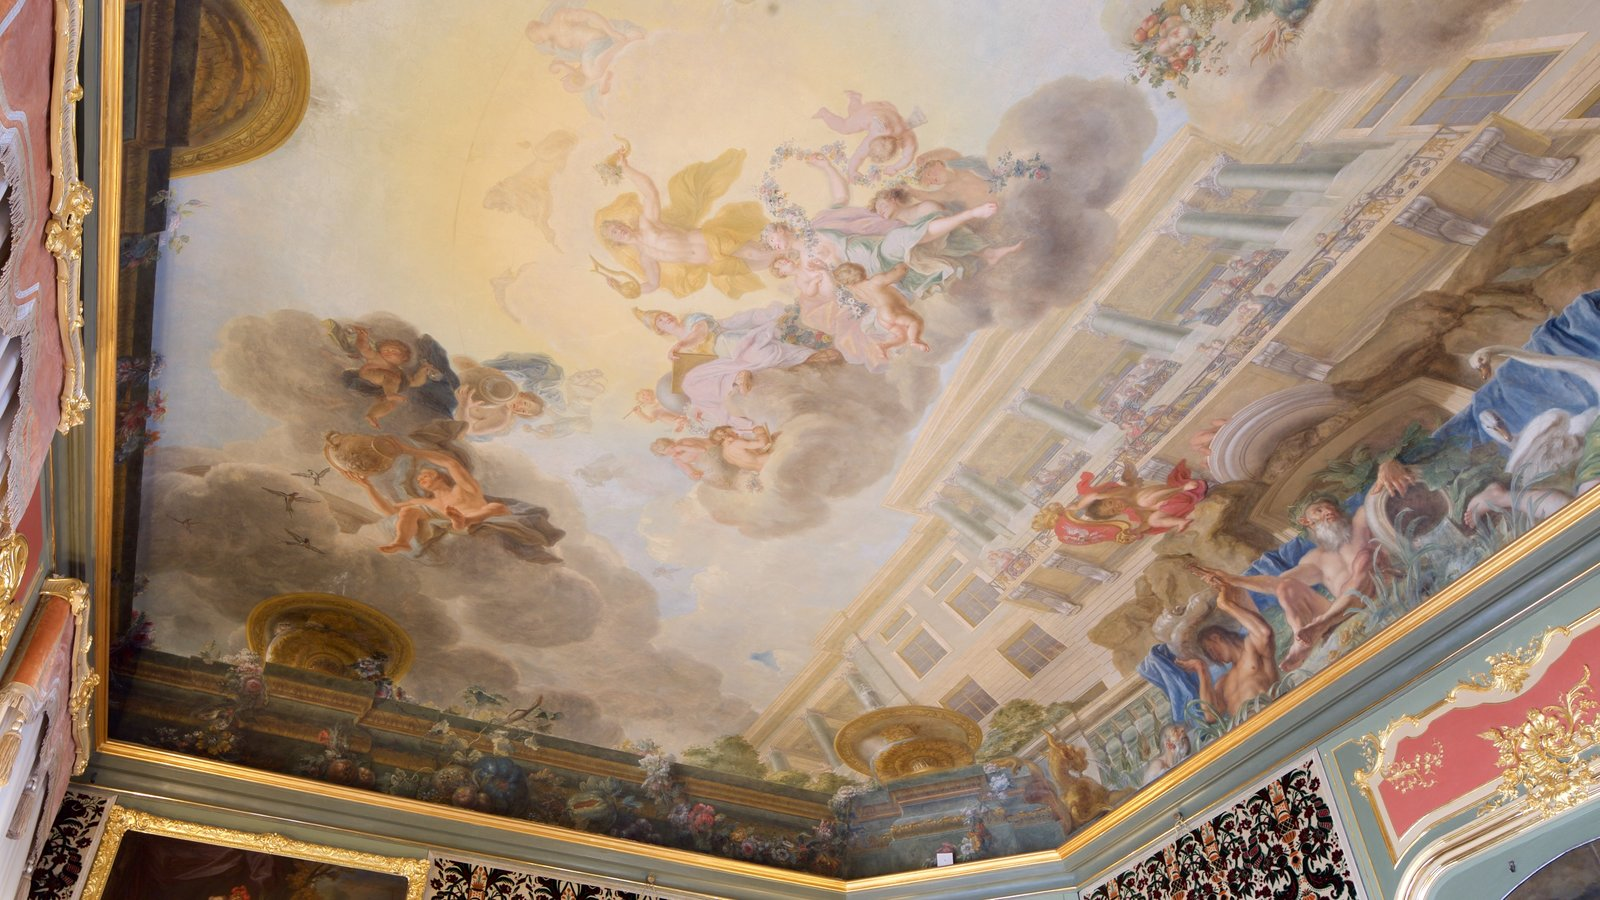 Wilanow Palace showing art, heritage elements and interior views